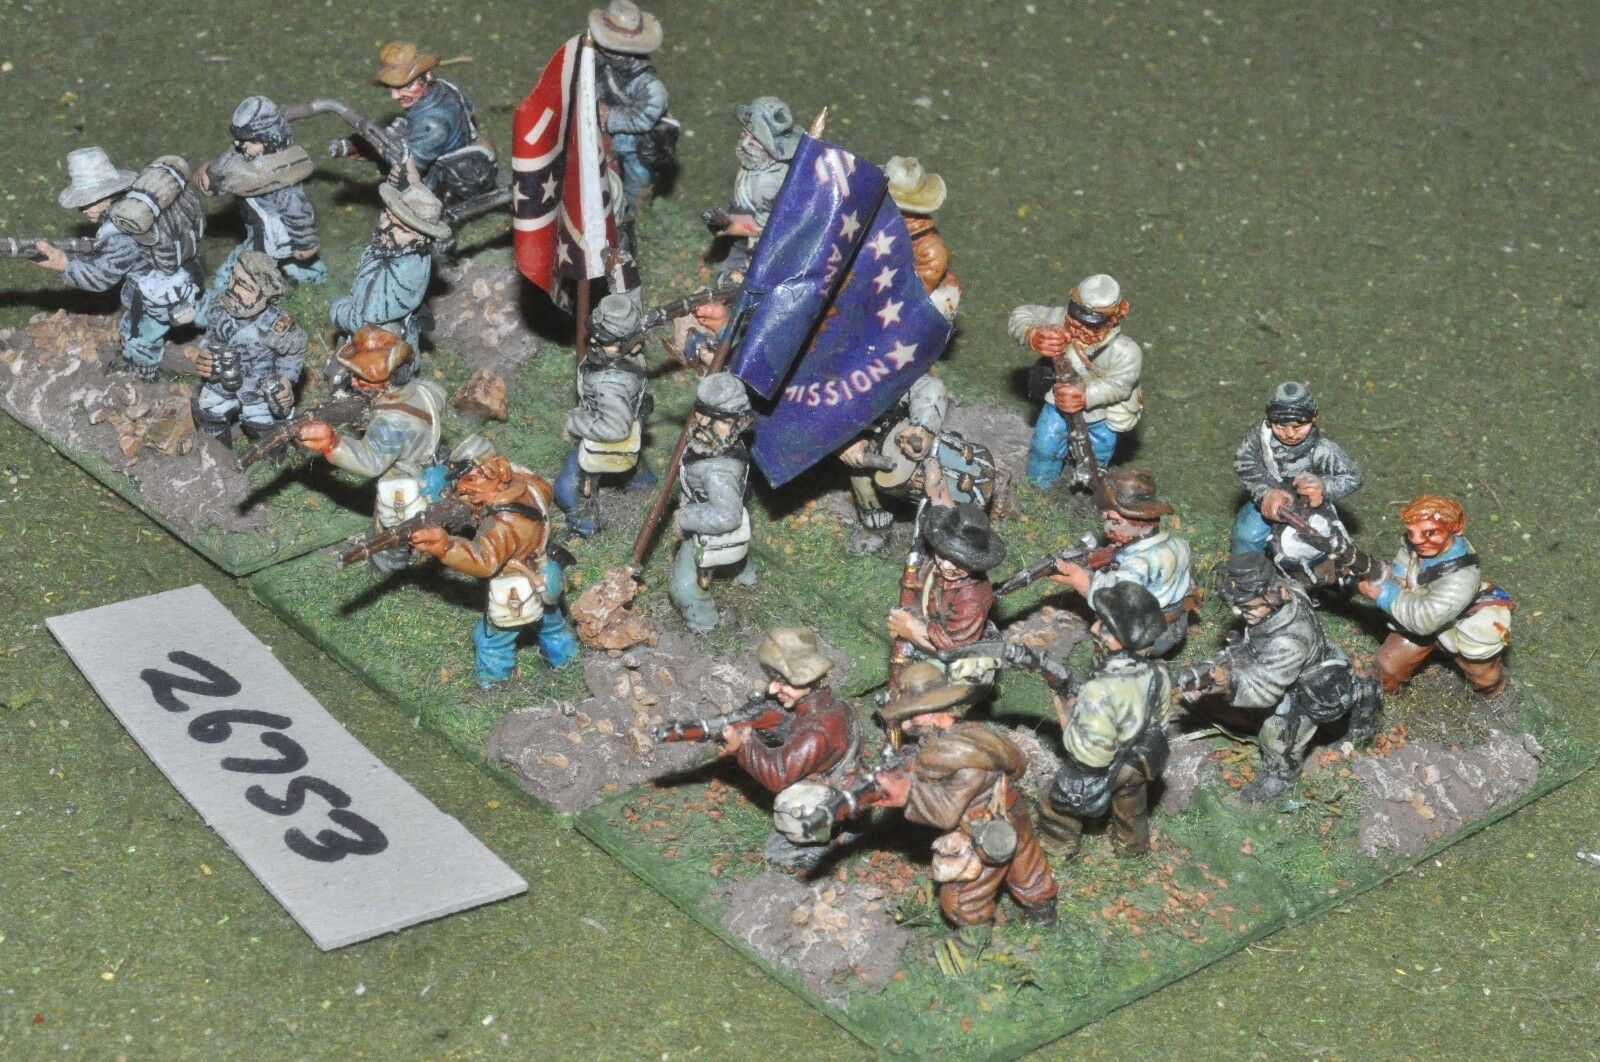 25mm ACW   confederate - regt. 24 figures - - - inf (26753) 039